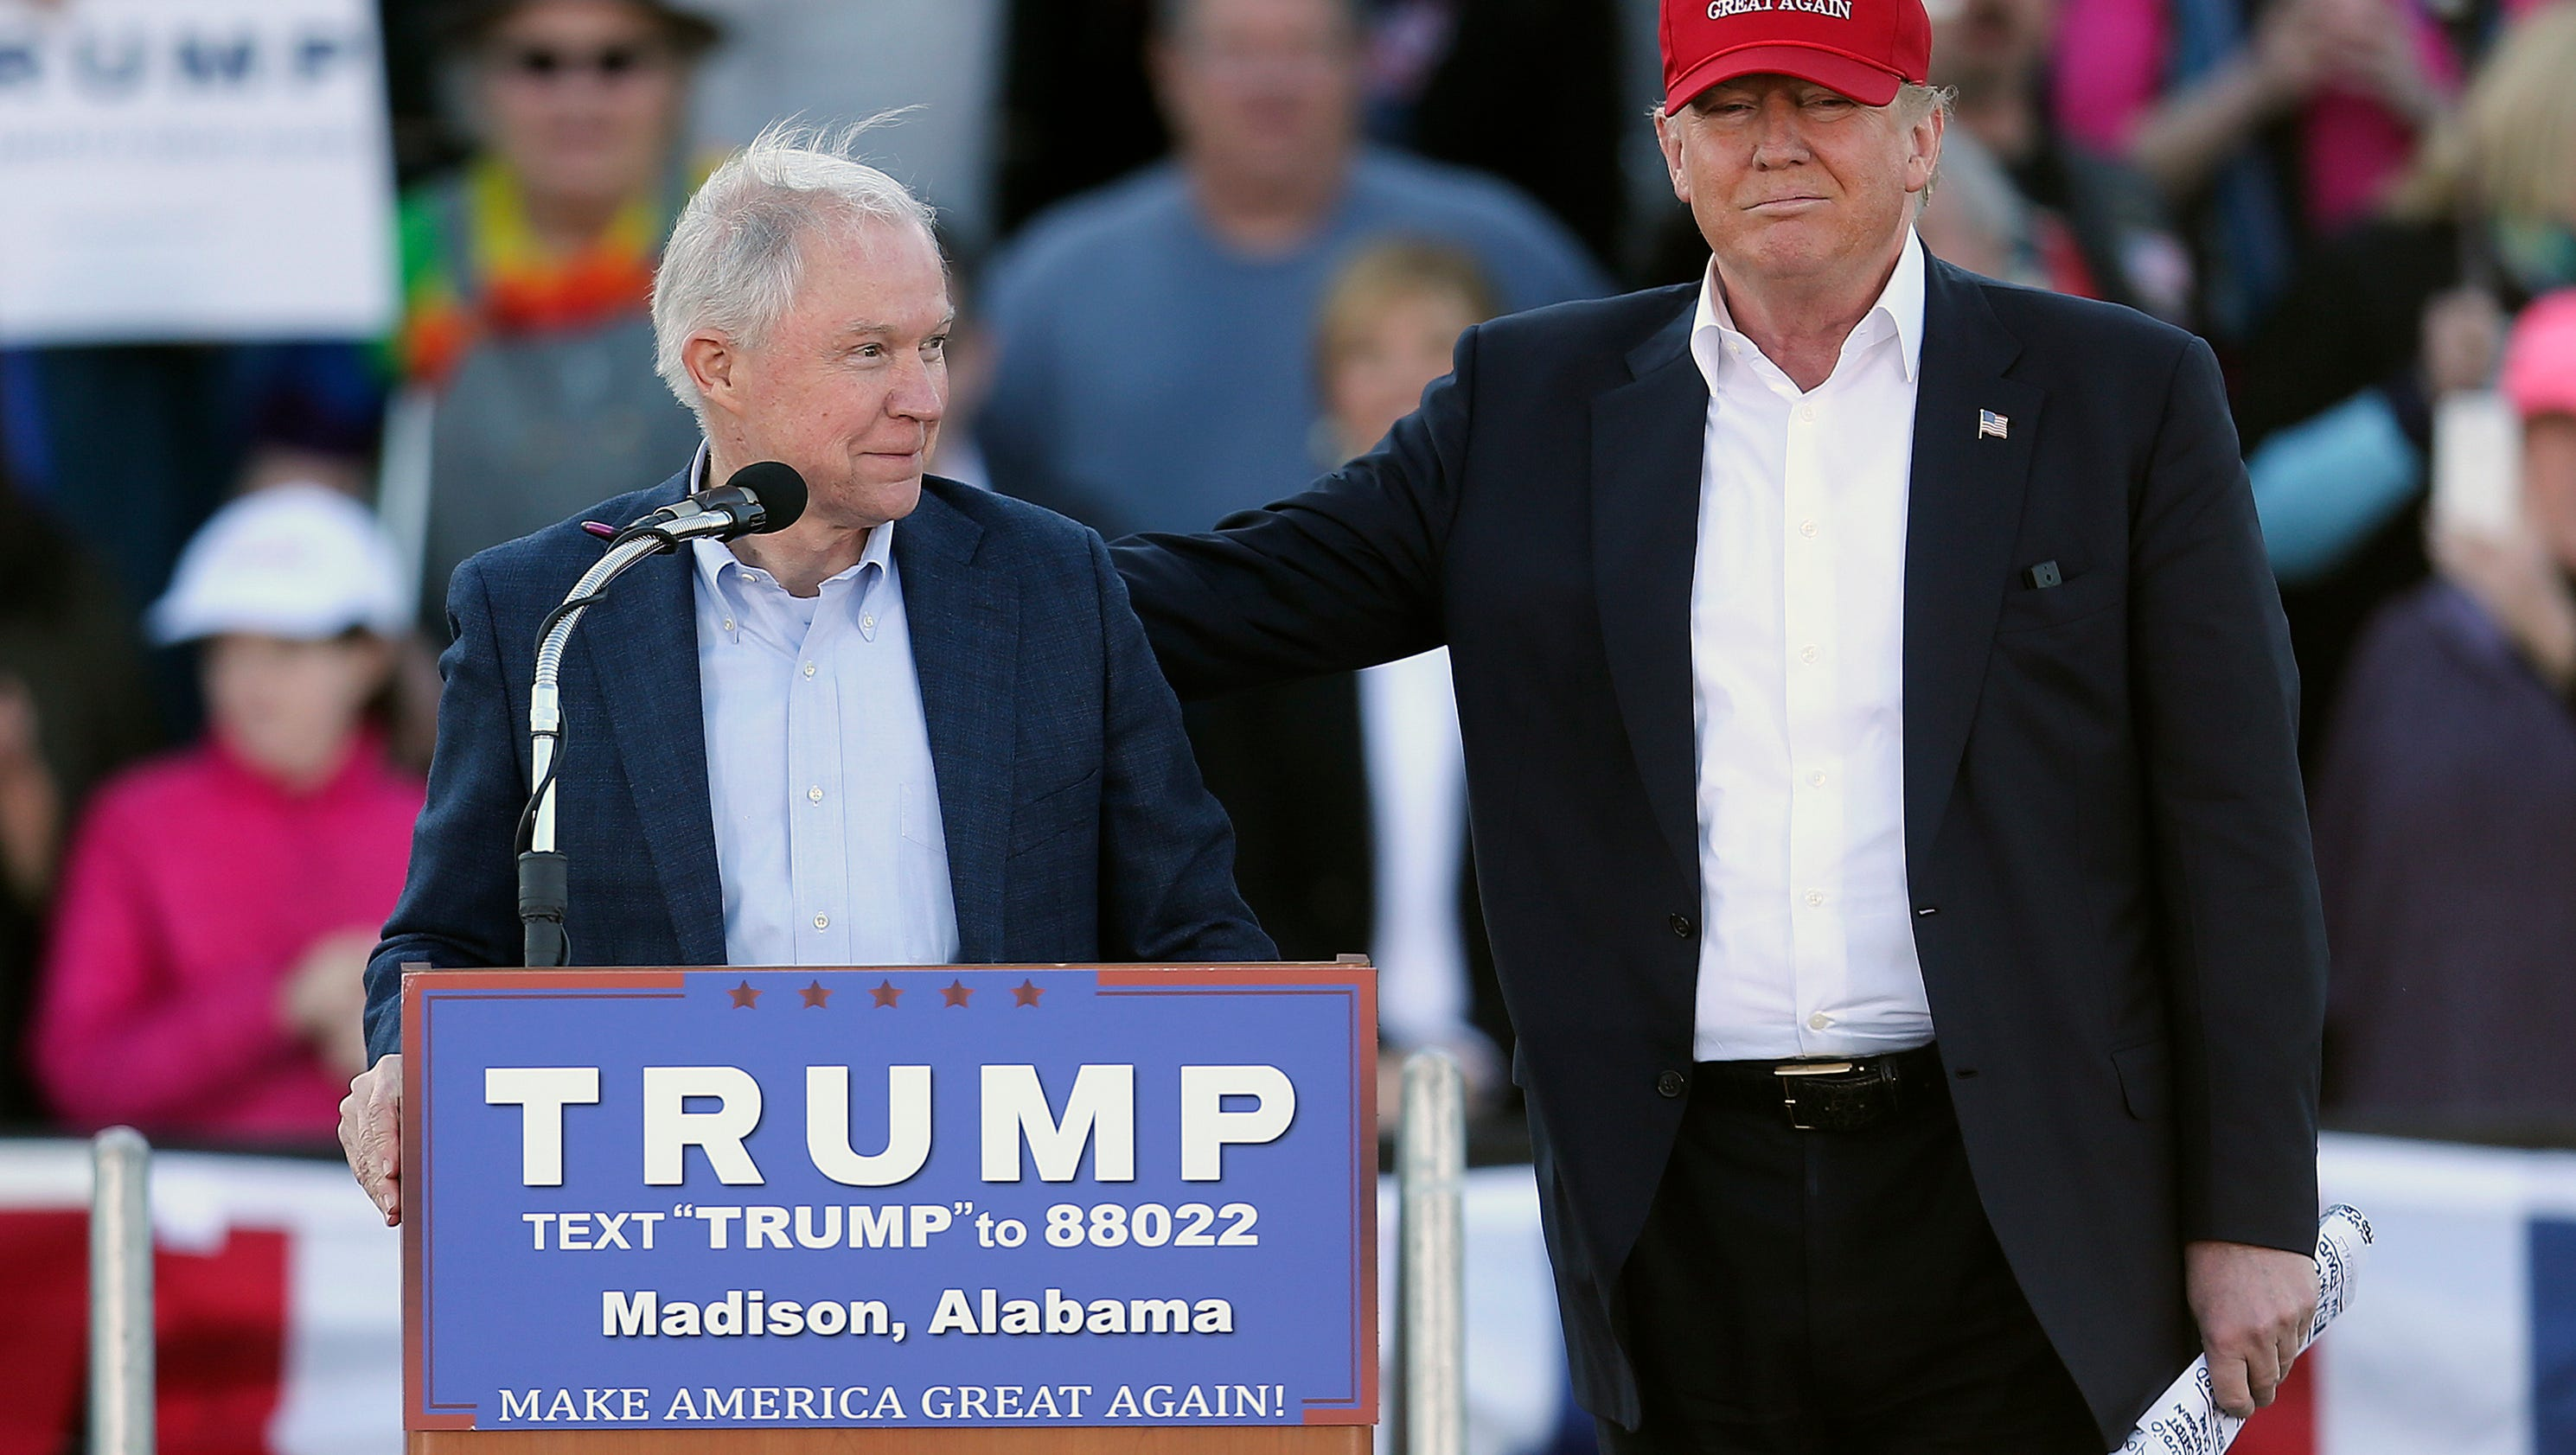 Trump: If I'd known Sessions would recuse himself on Russia I wouldn't have picked him